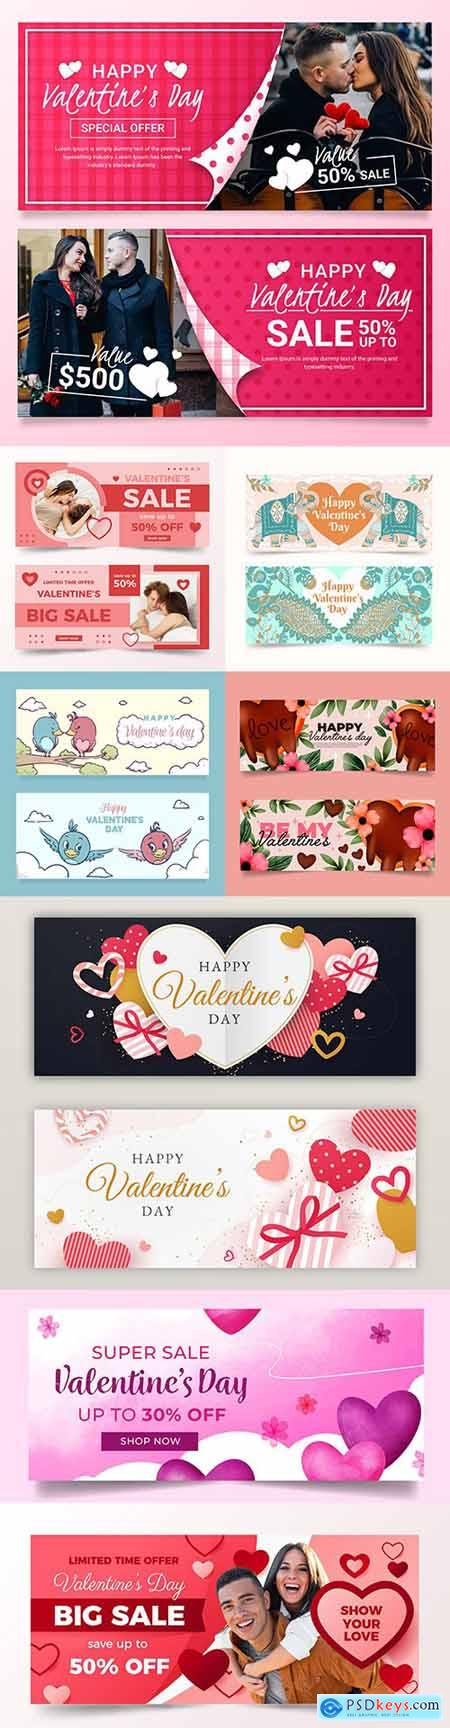 Valentines Day banner and menu design template 2